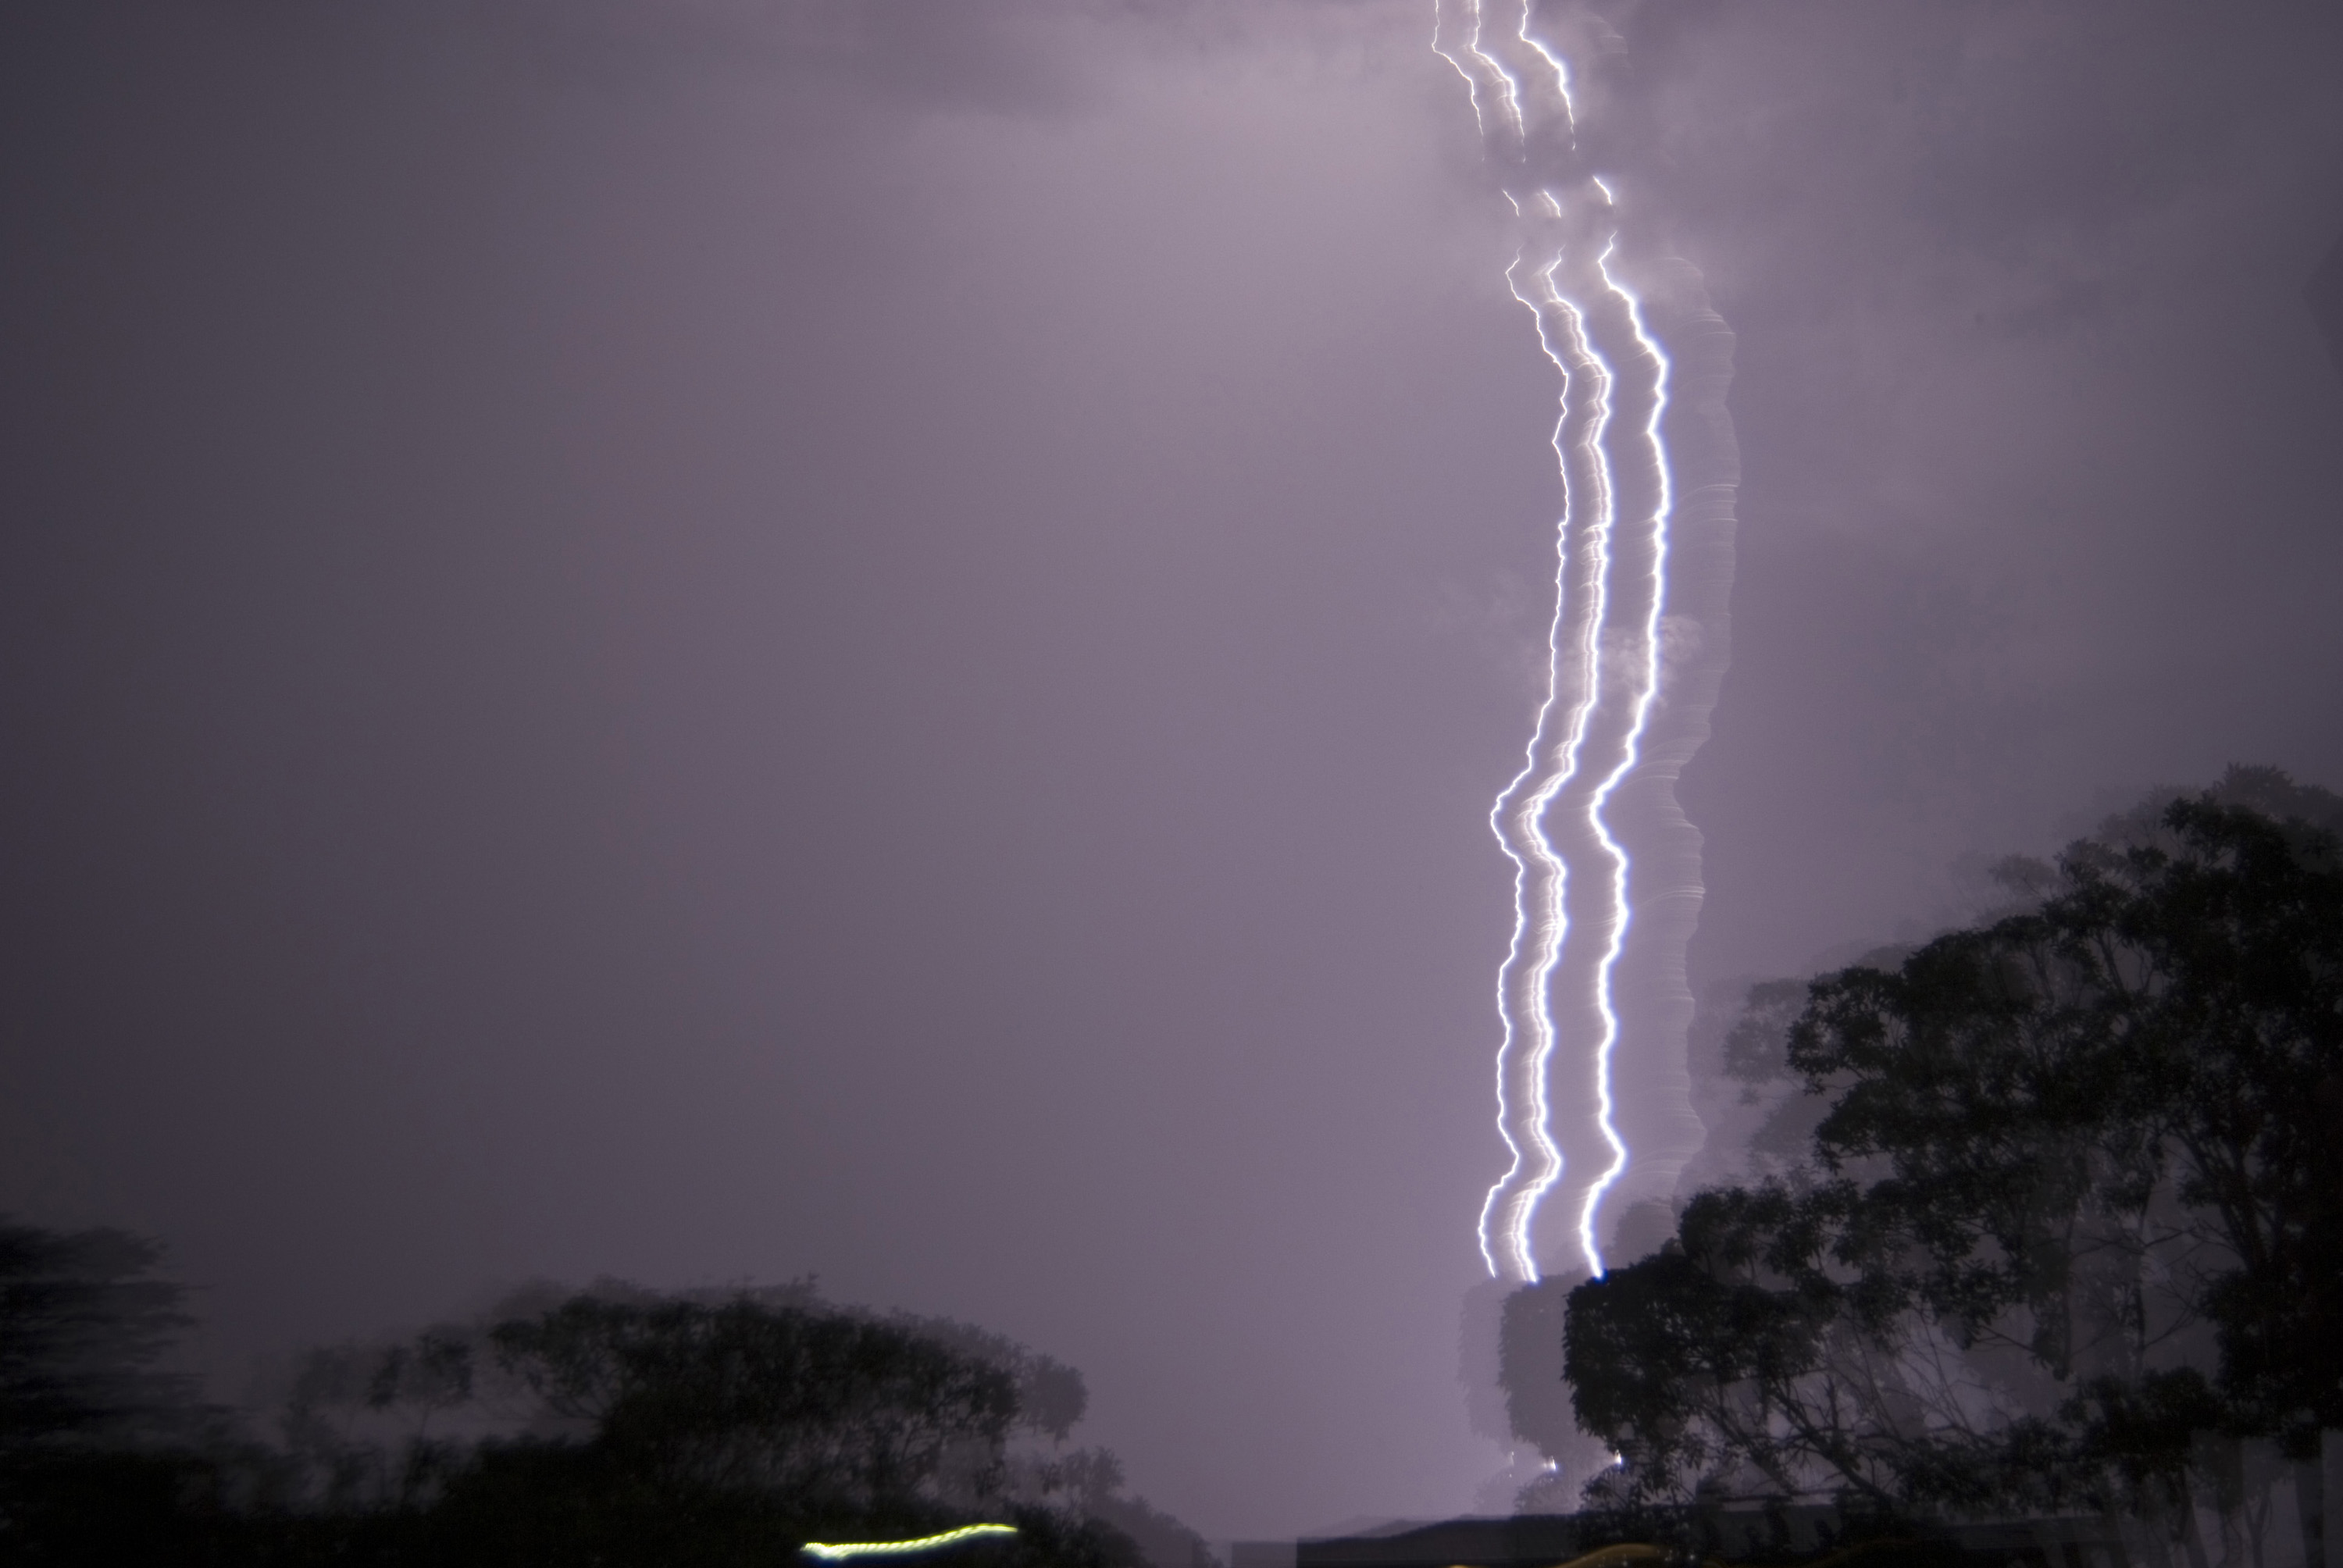 stormy lightning bolt with motion blur